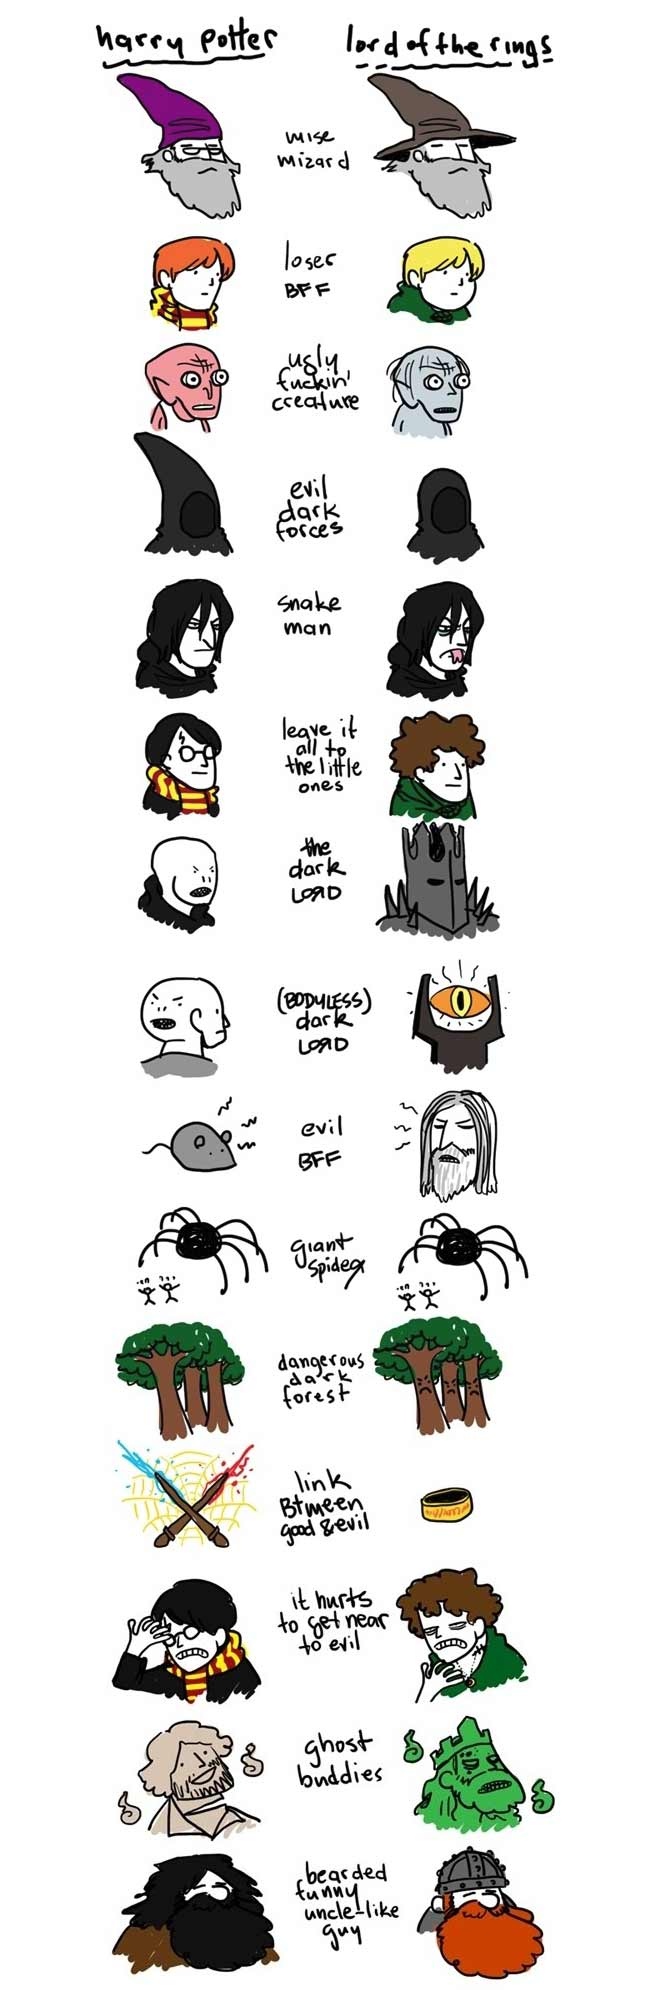 lord of the rings characters vs harry potter characters